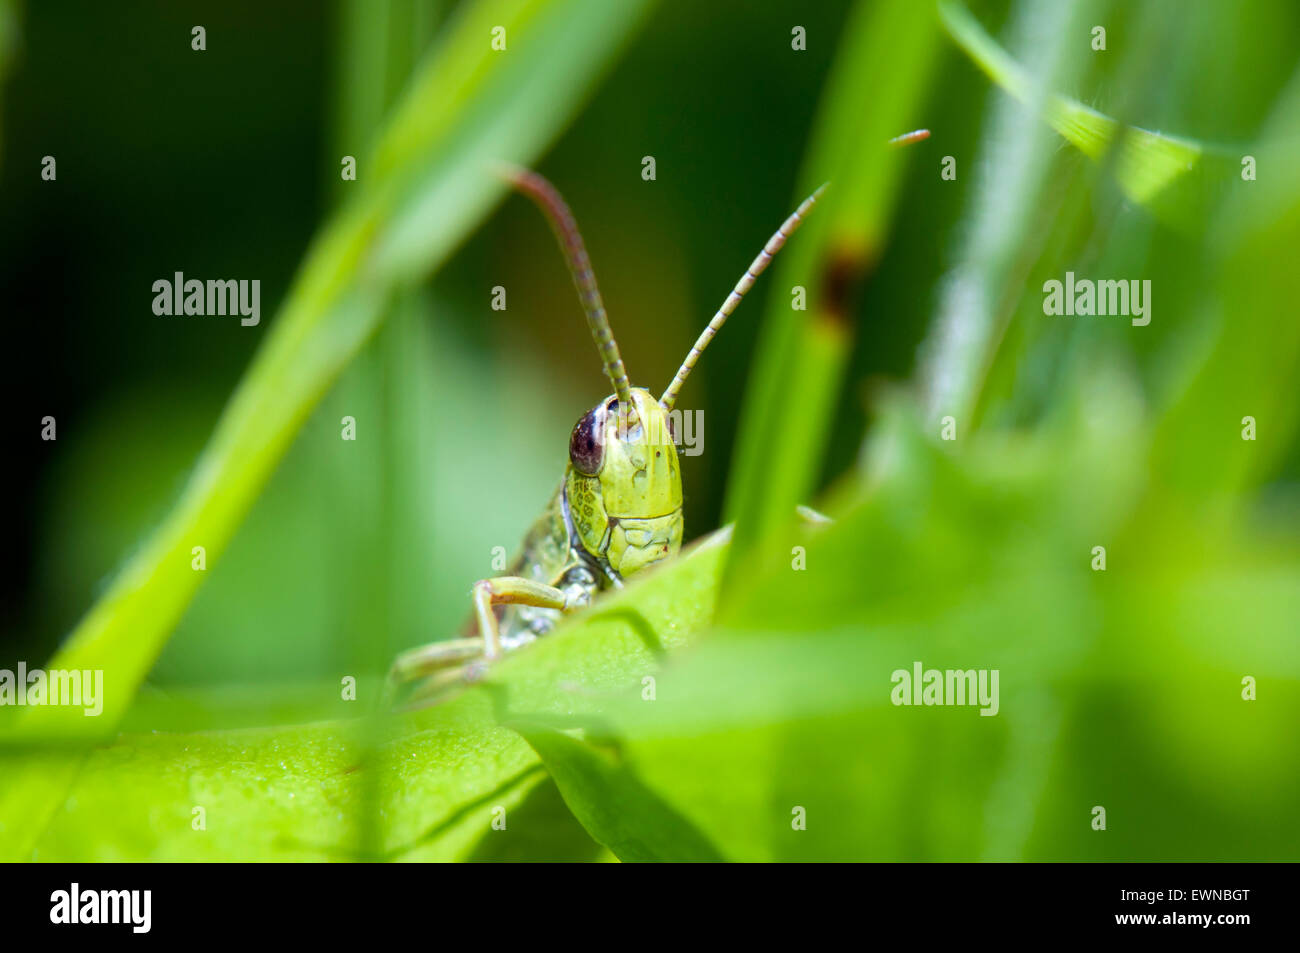 Meadow Grasshopper (Chorthippus parallelus) on gras germany europe - Stock Image